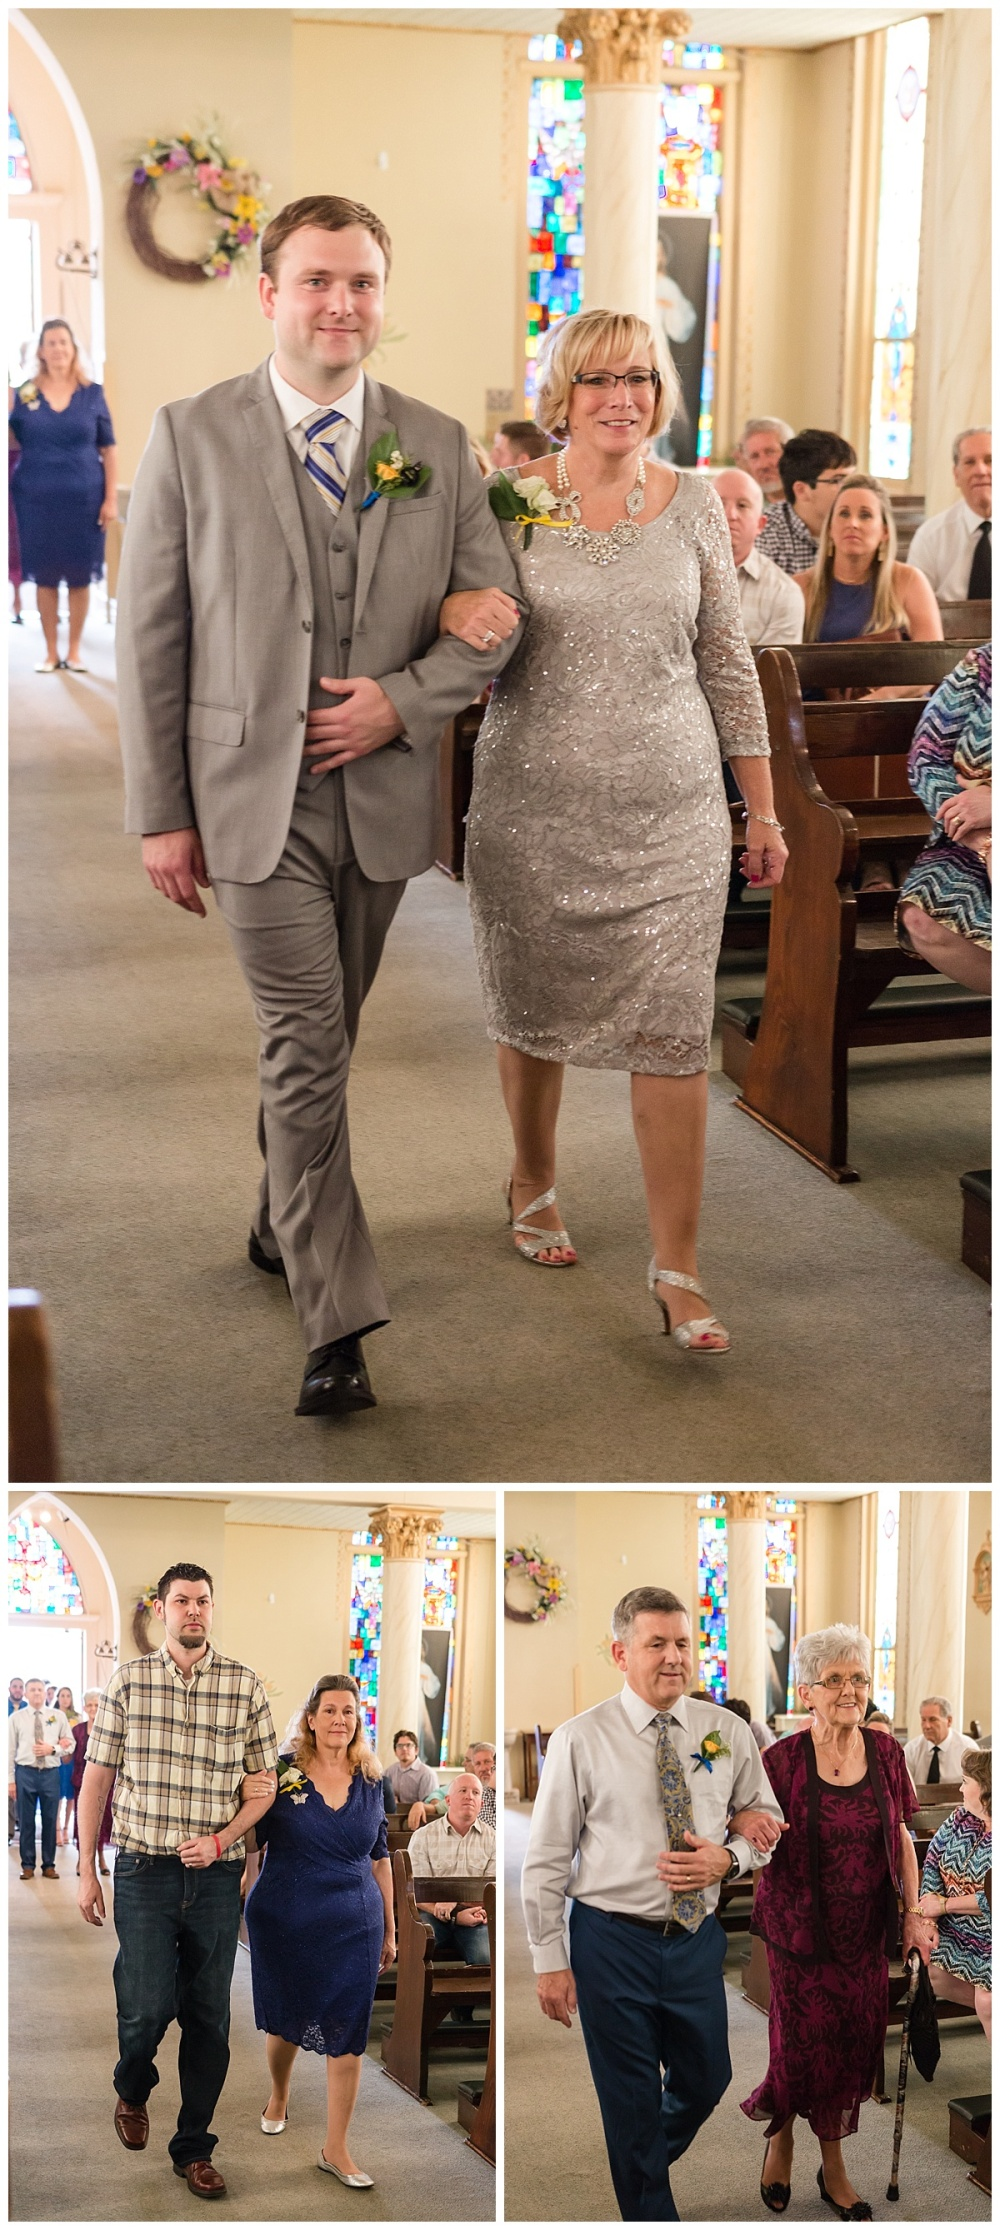 Texas-Wedding-Photographer-La-Coste-Our-Lady-Of-Grace-Church-Bride-Groom-Lego-Theme-Carly-Barton-Photography_0047.jpg